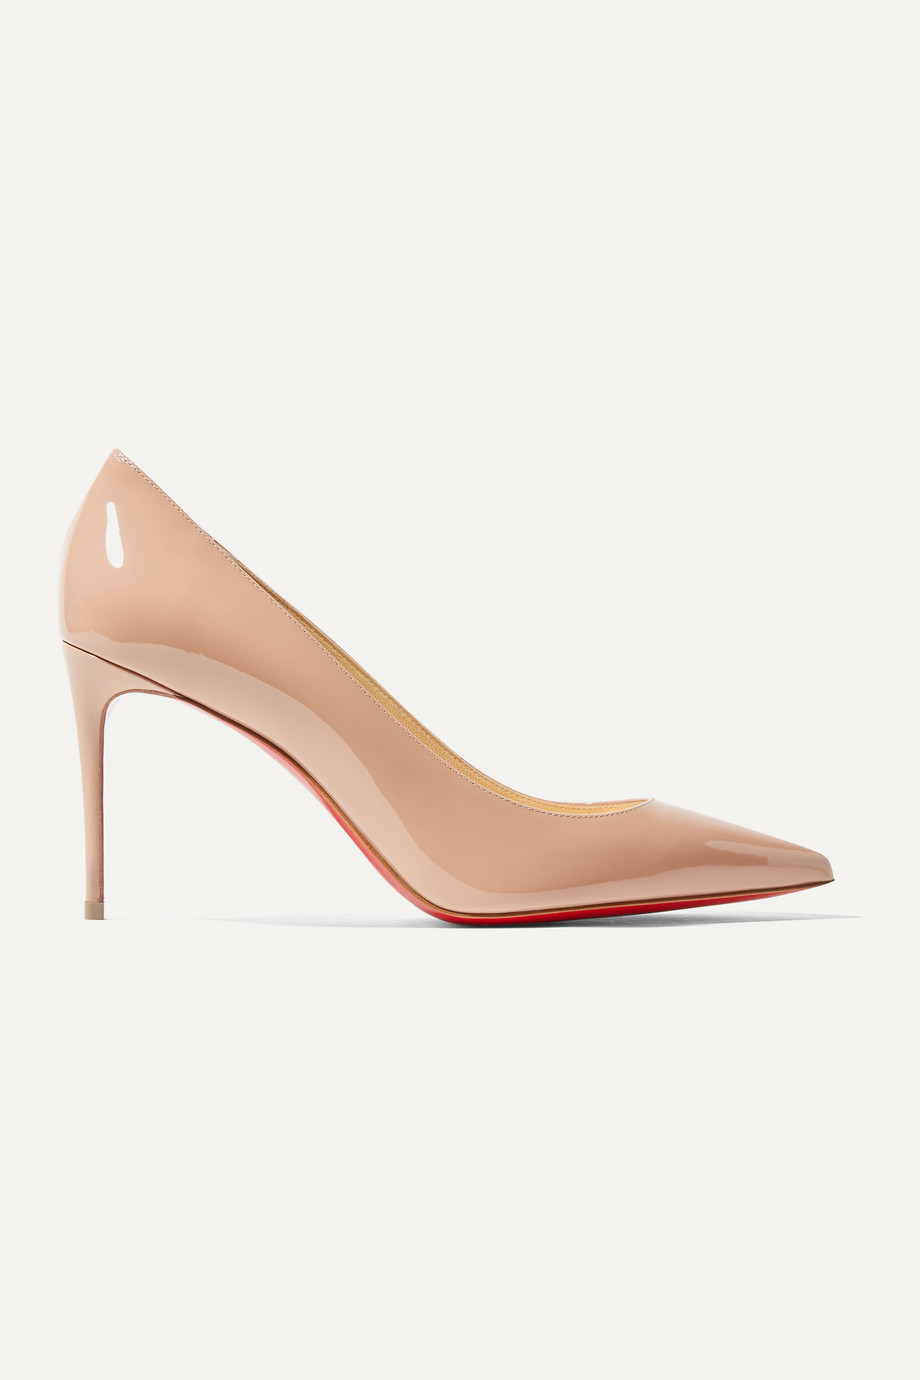 CHRISTIAN LOUBOUTIN Kate 85 patent-leather pumps